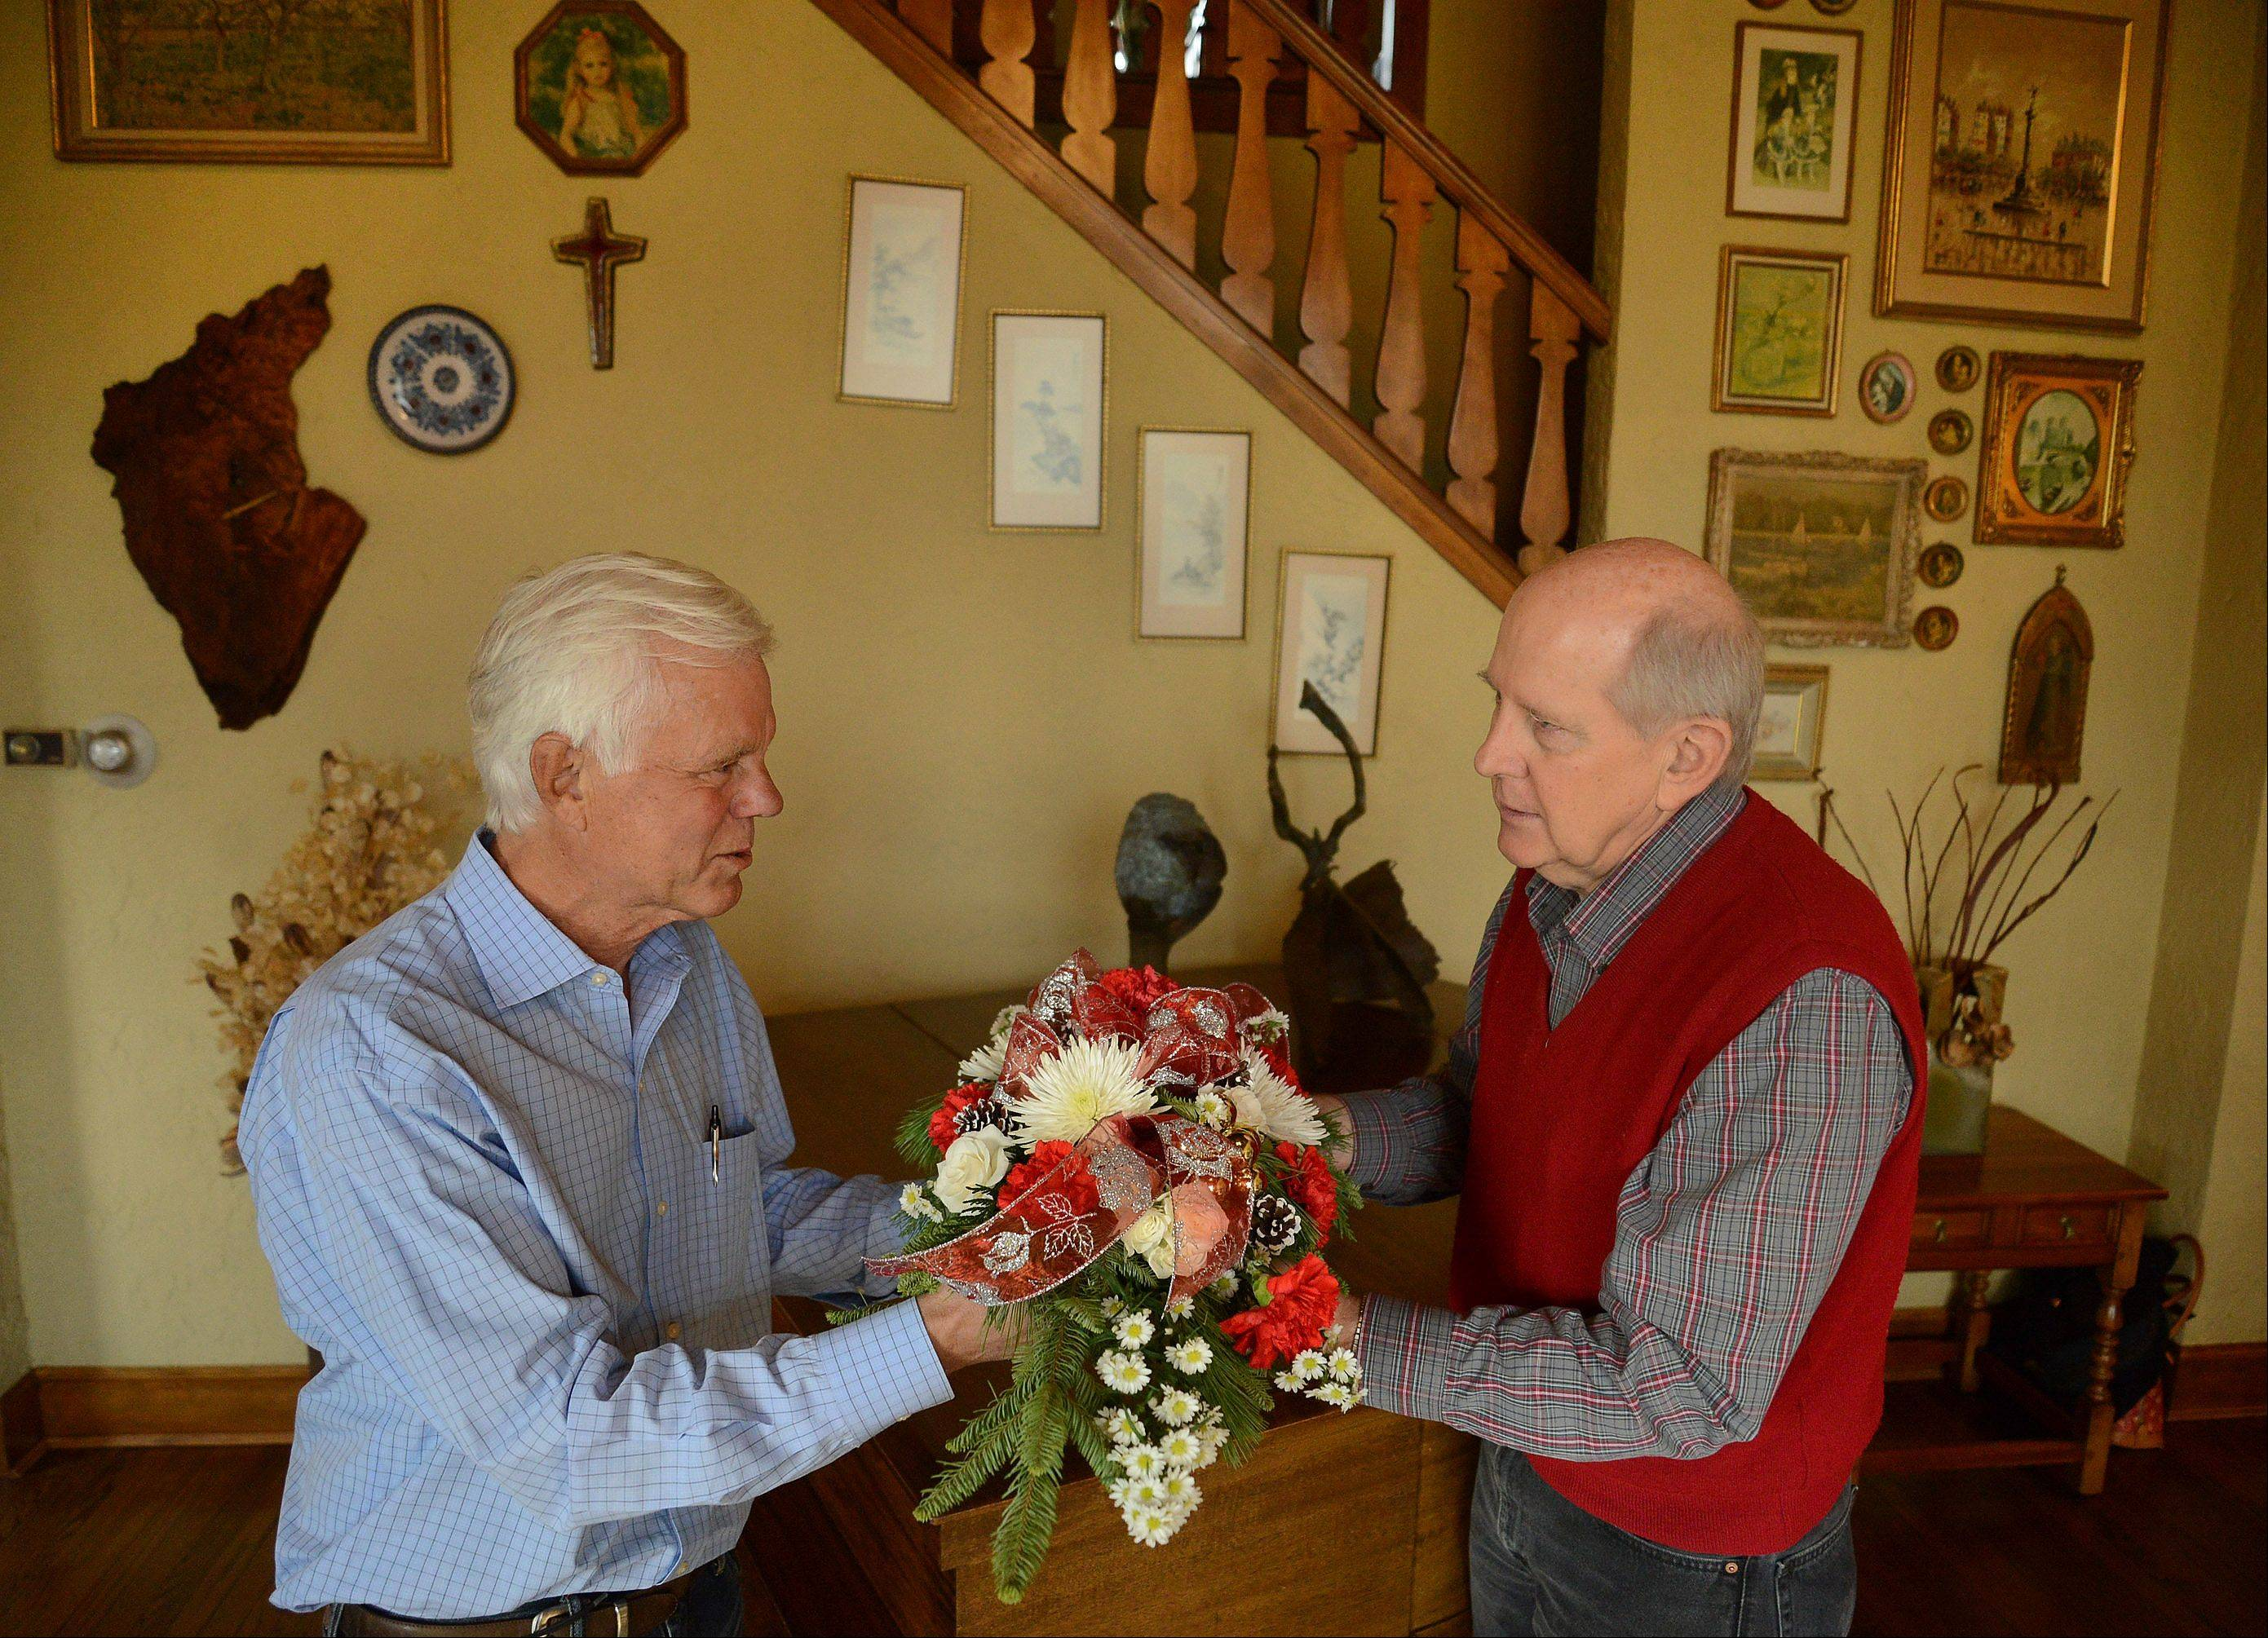 Larry Moats, left, consults with Paul Seils of Busse's Flowers, who will help decorate the Moats' family home for Mount Prospect's holiday housewalk.